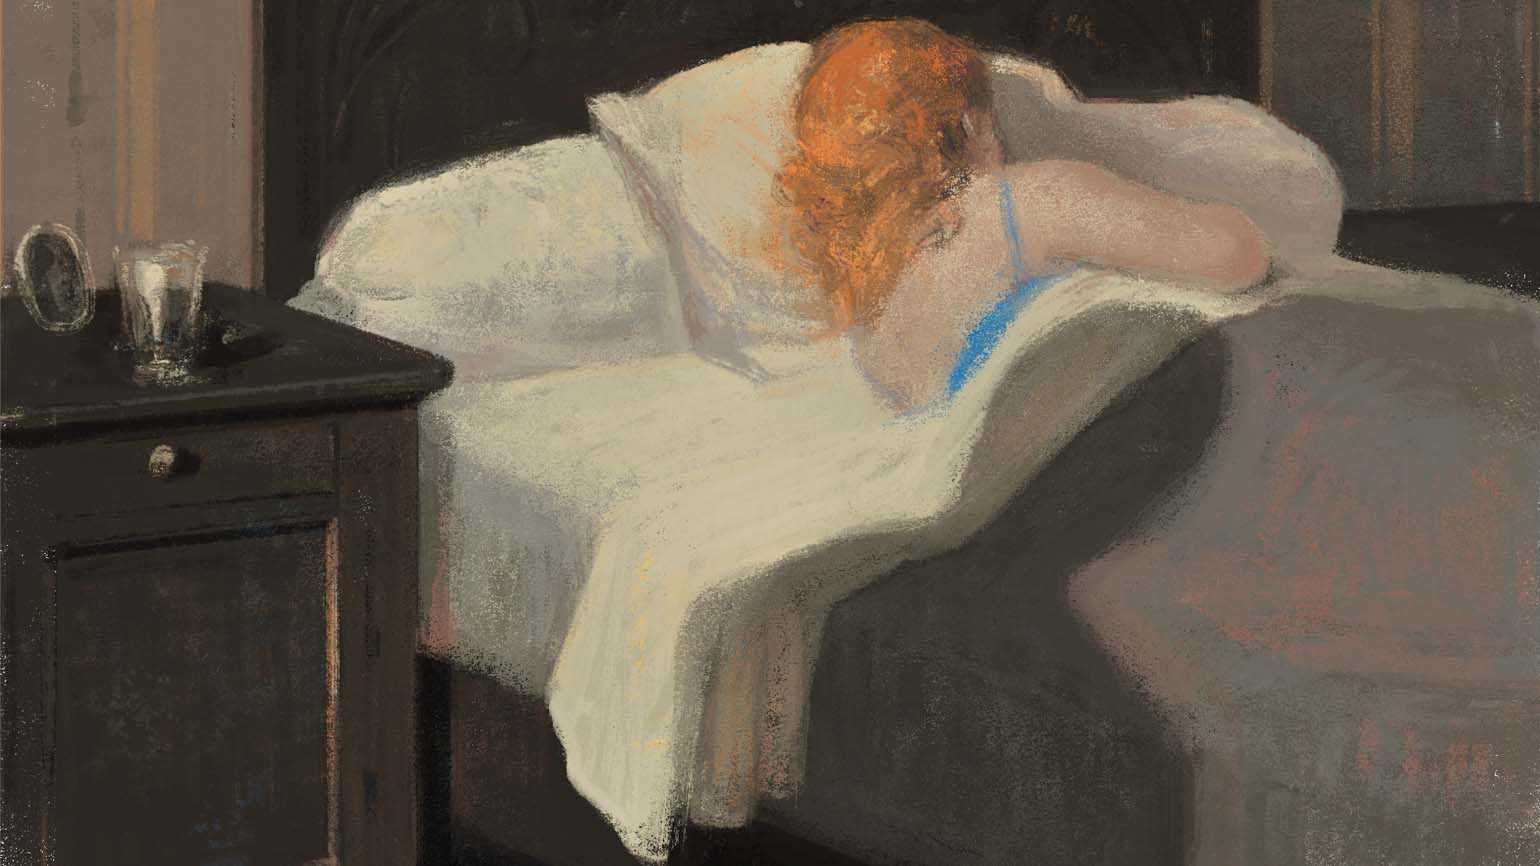 An illustration of a woman sleeping in her bed; Illustration By GÉRARD DUBOIS